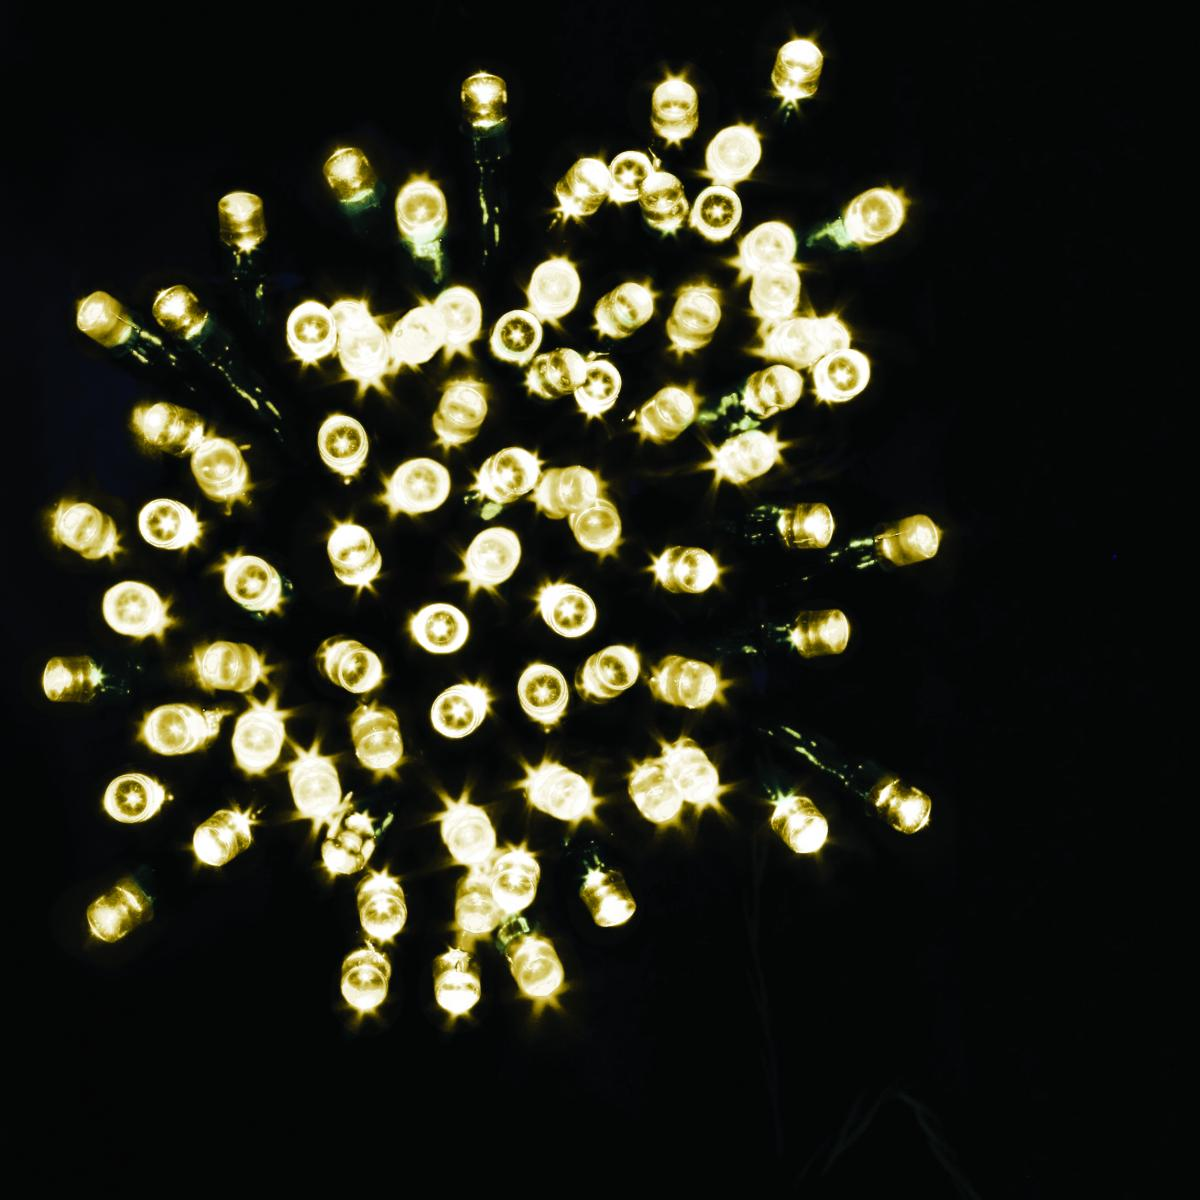 50 Battery operated Timer String Lights - Warm White – Now Only £4.00